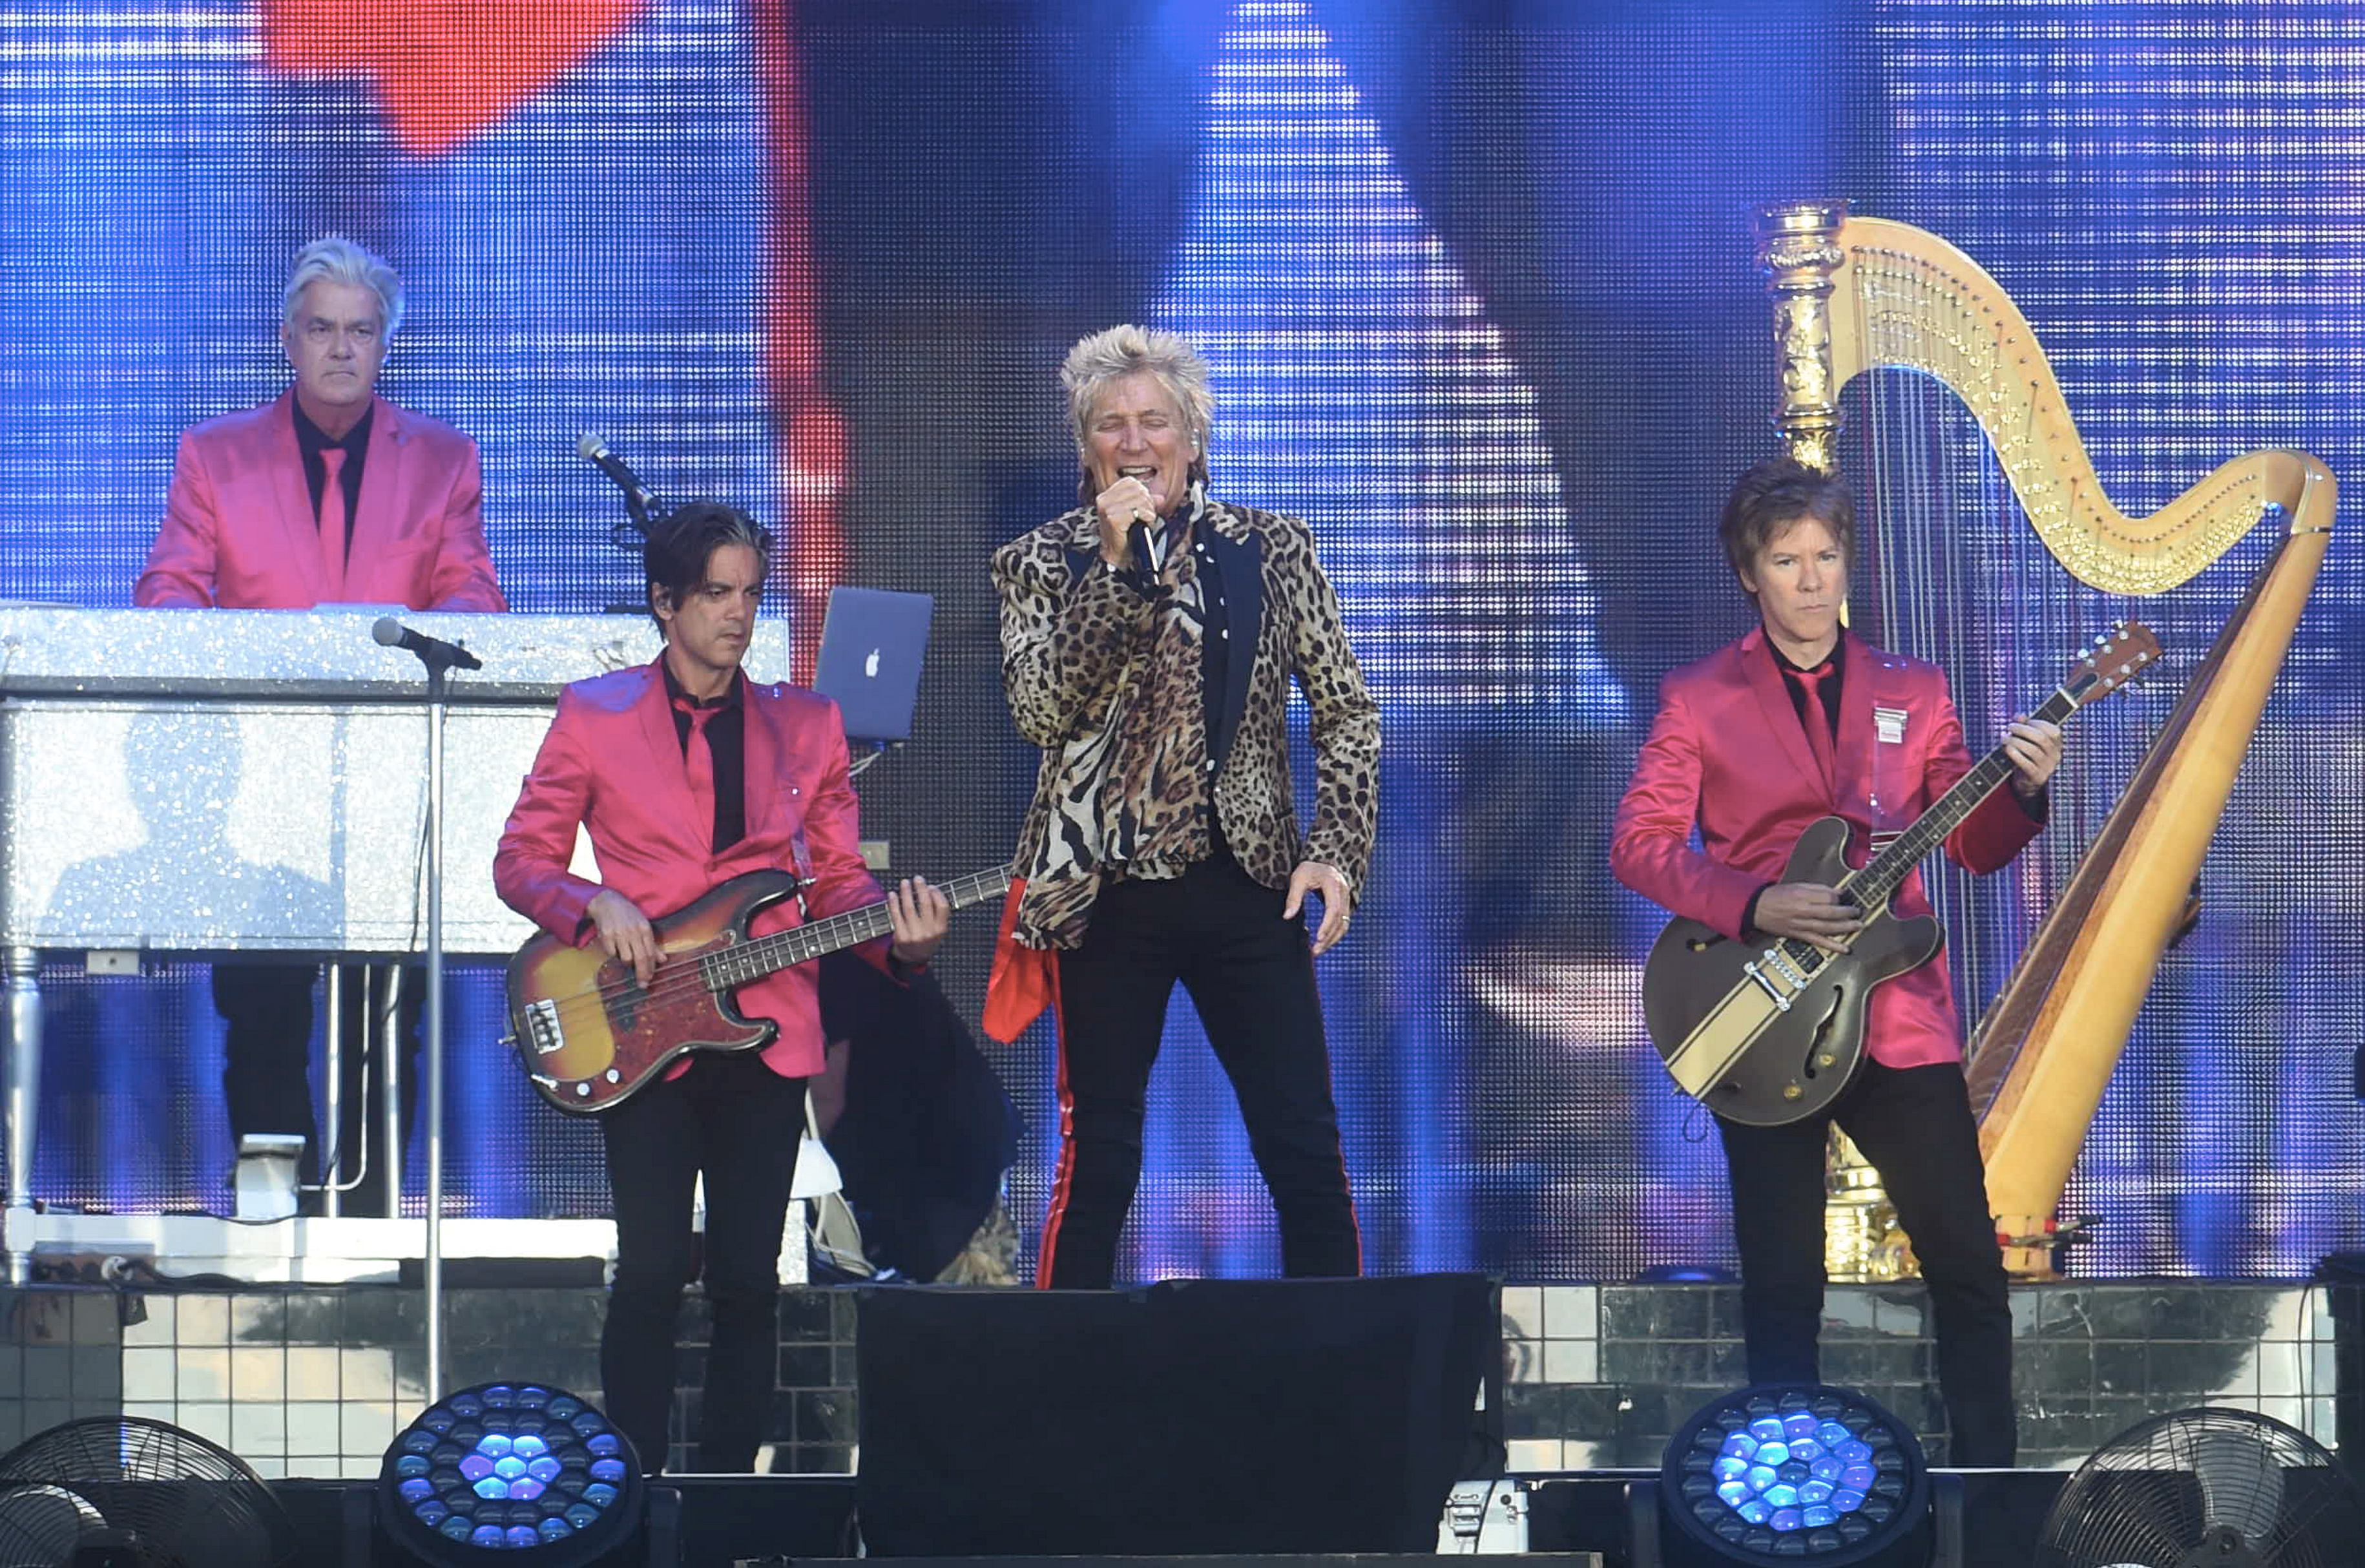 Sir Rod Stewart played the final AECC concert last night.